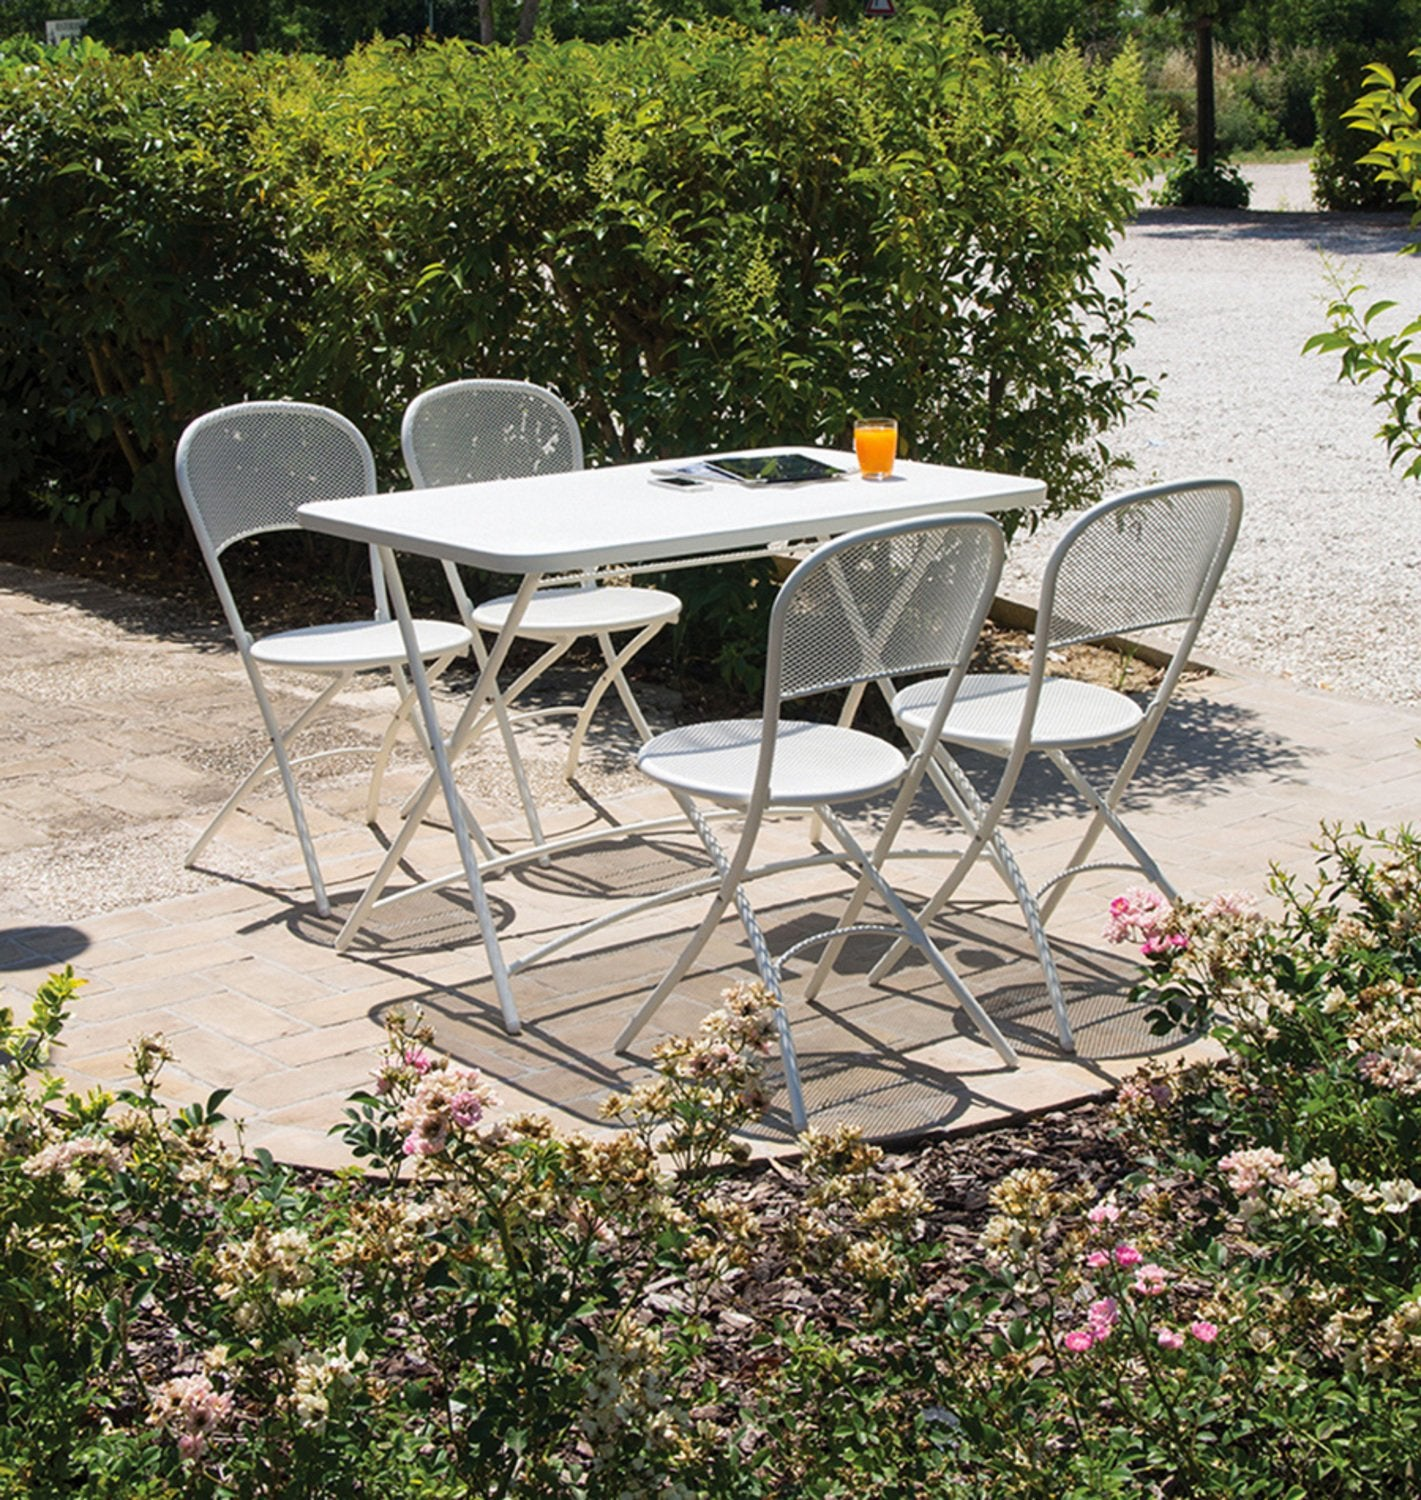 Salon de jardin leroy merlin en teck - Leroy merlin table jardin ...